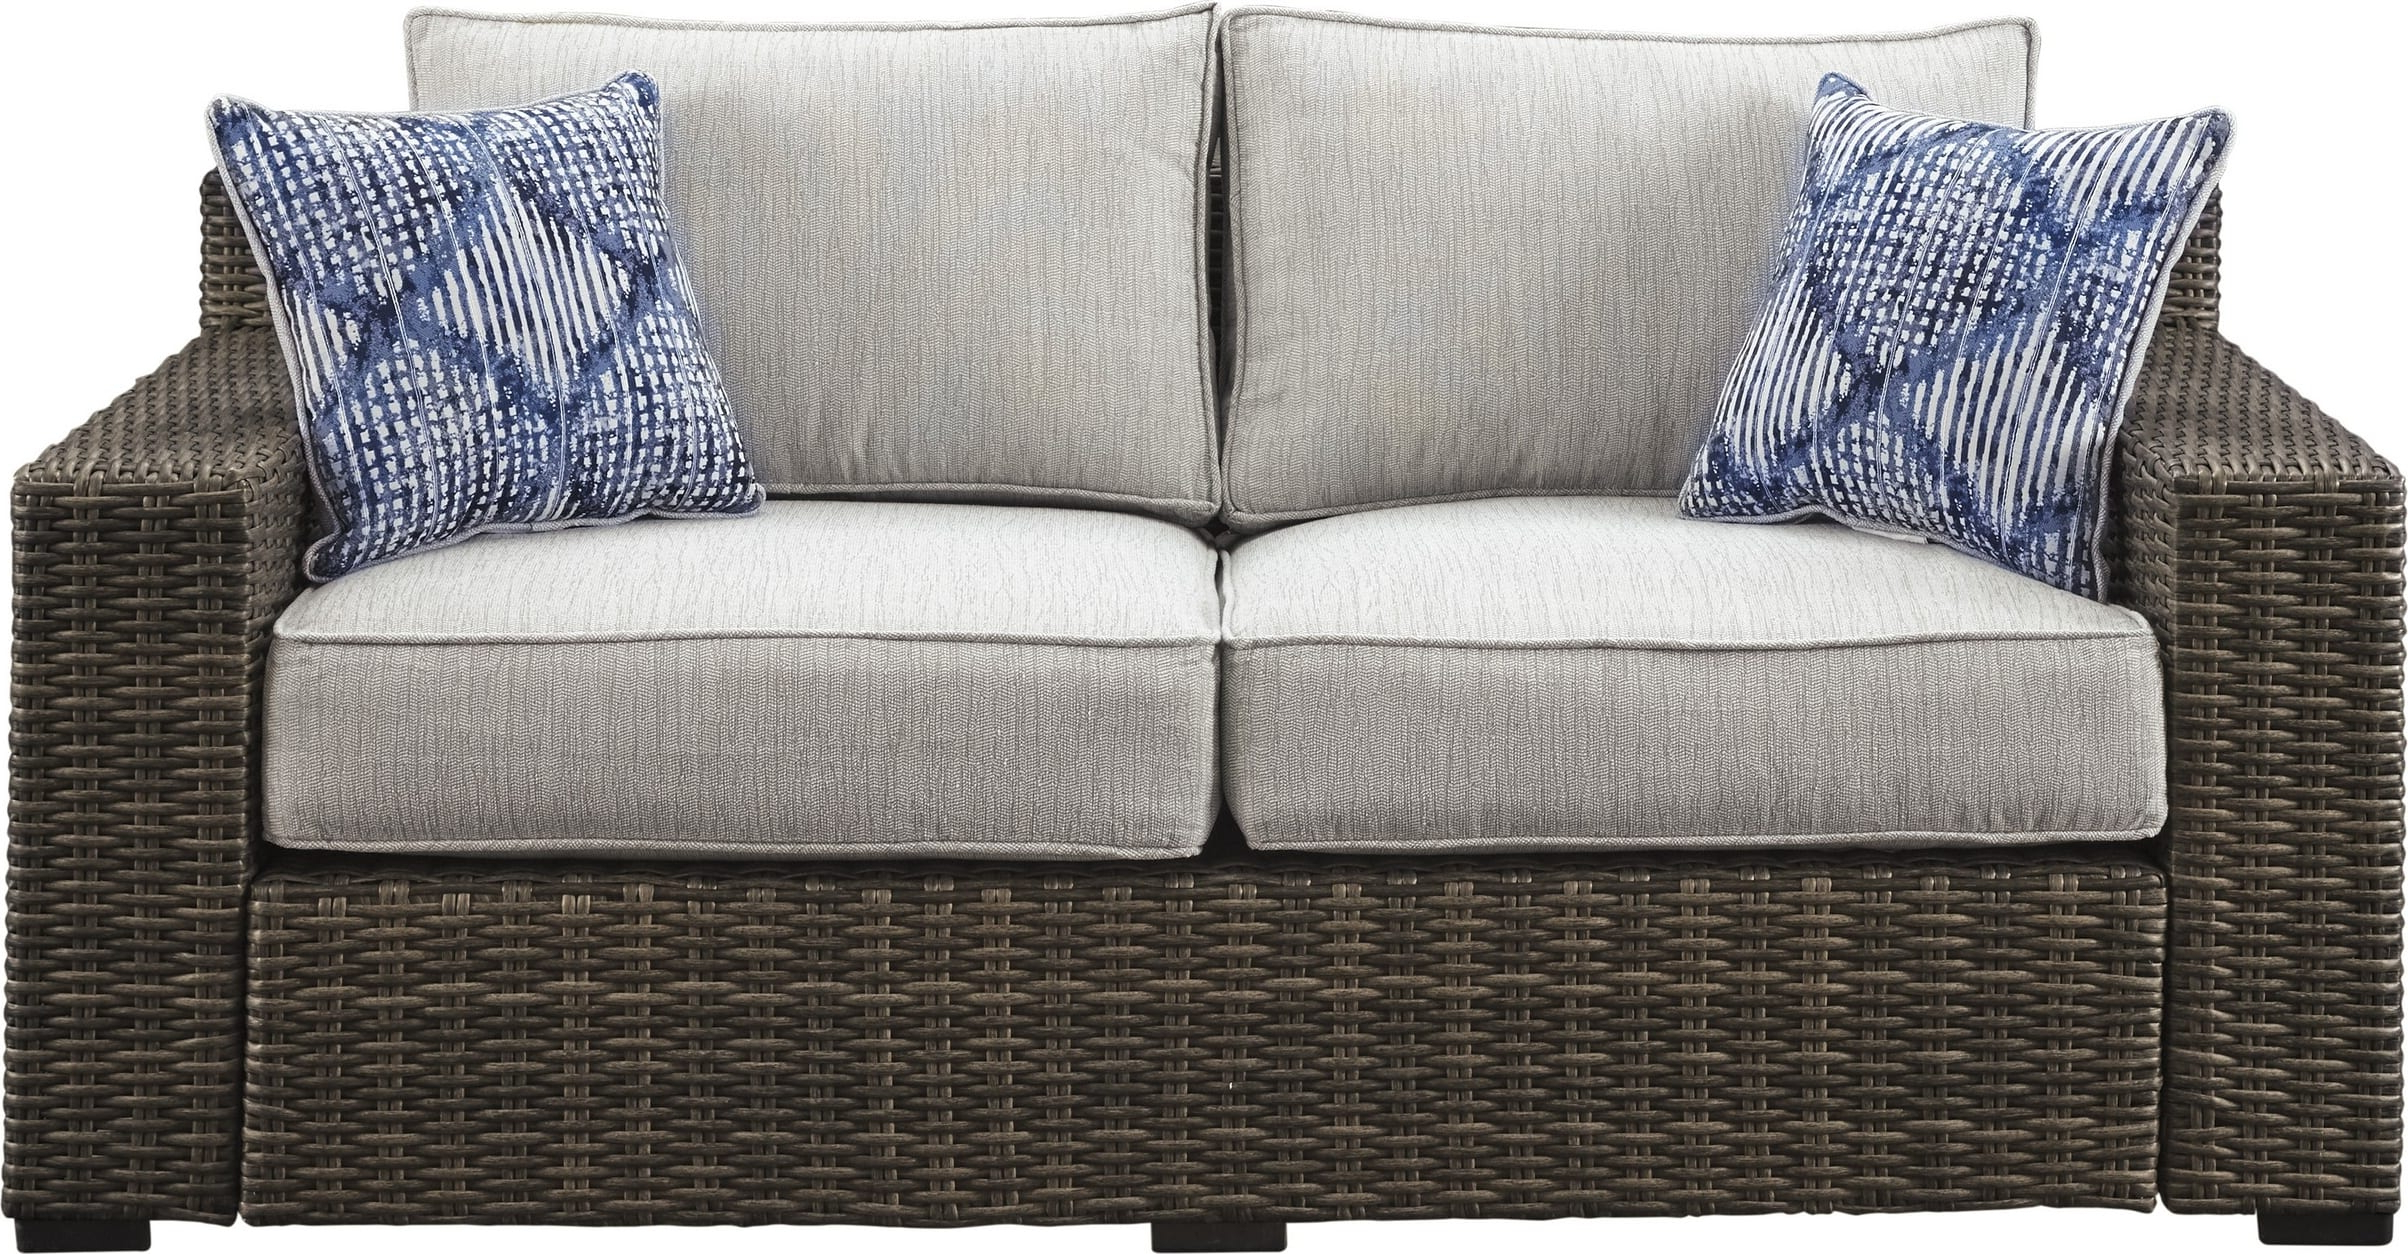 Signature Designashley P782 835 Regarding Latest Oceanside Outdoor Wicker Loveseats With Cushions (View 23 of 25)